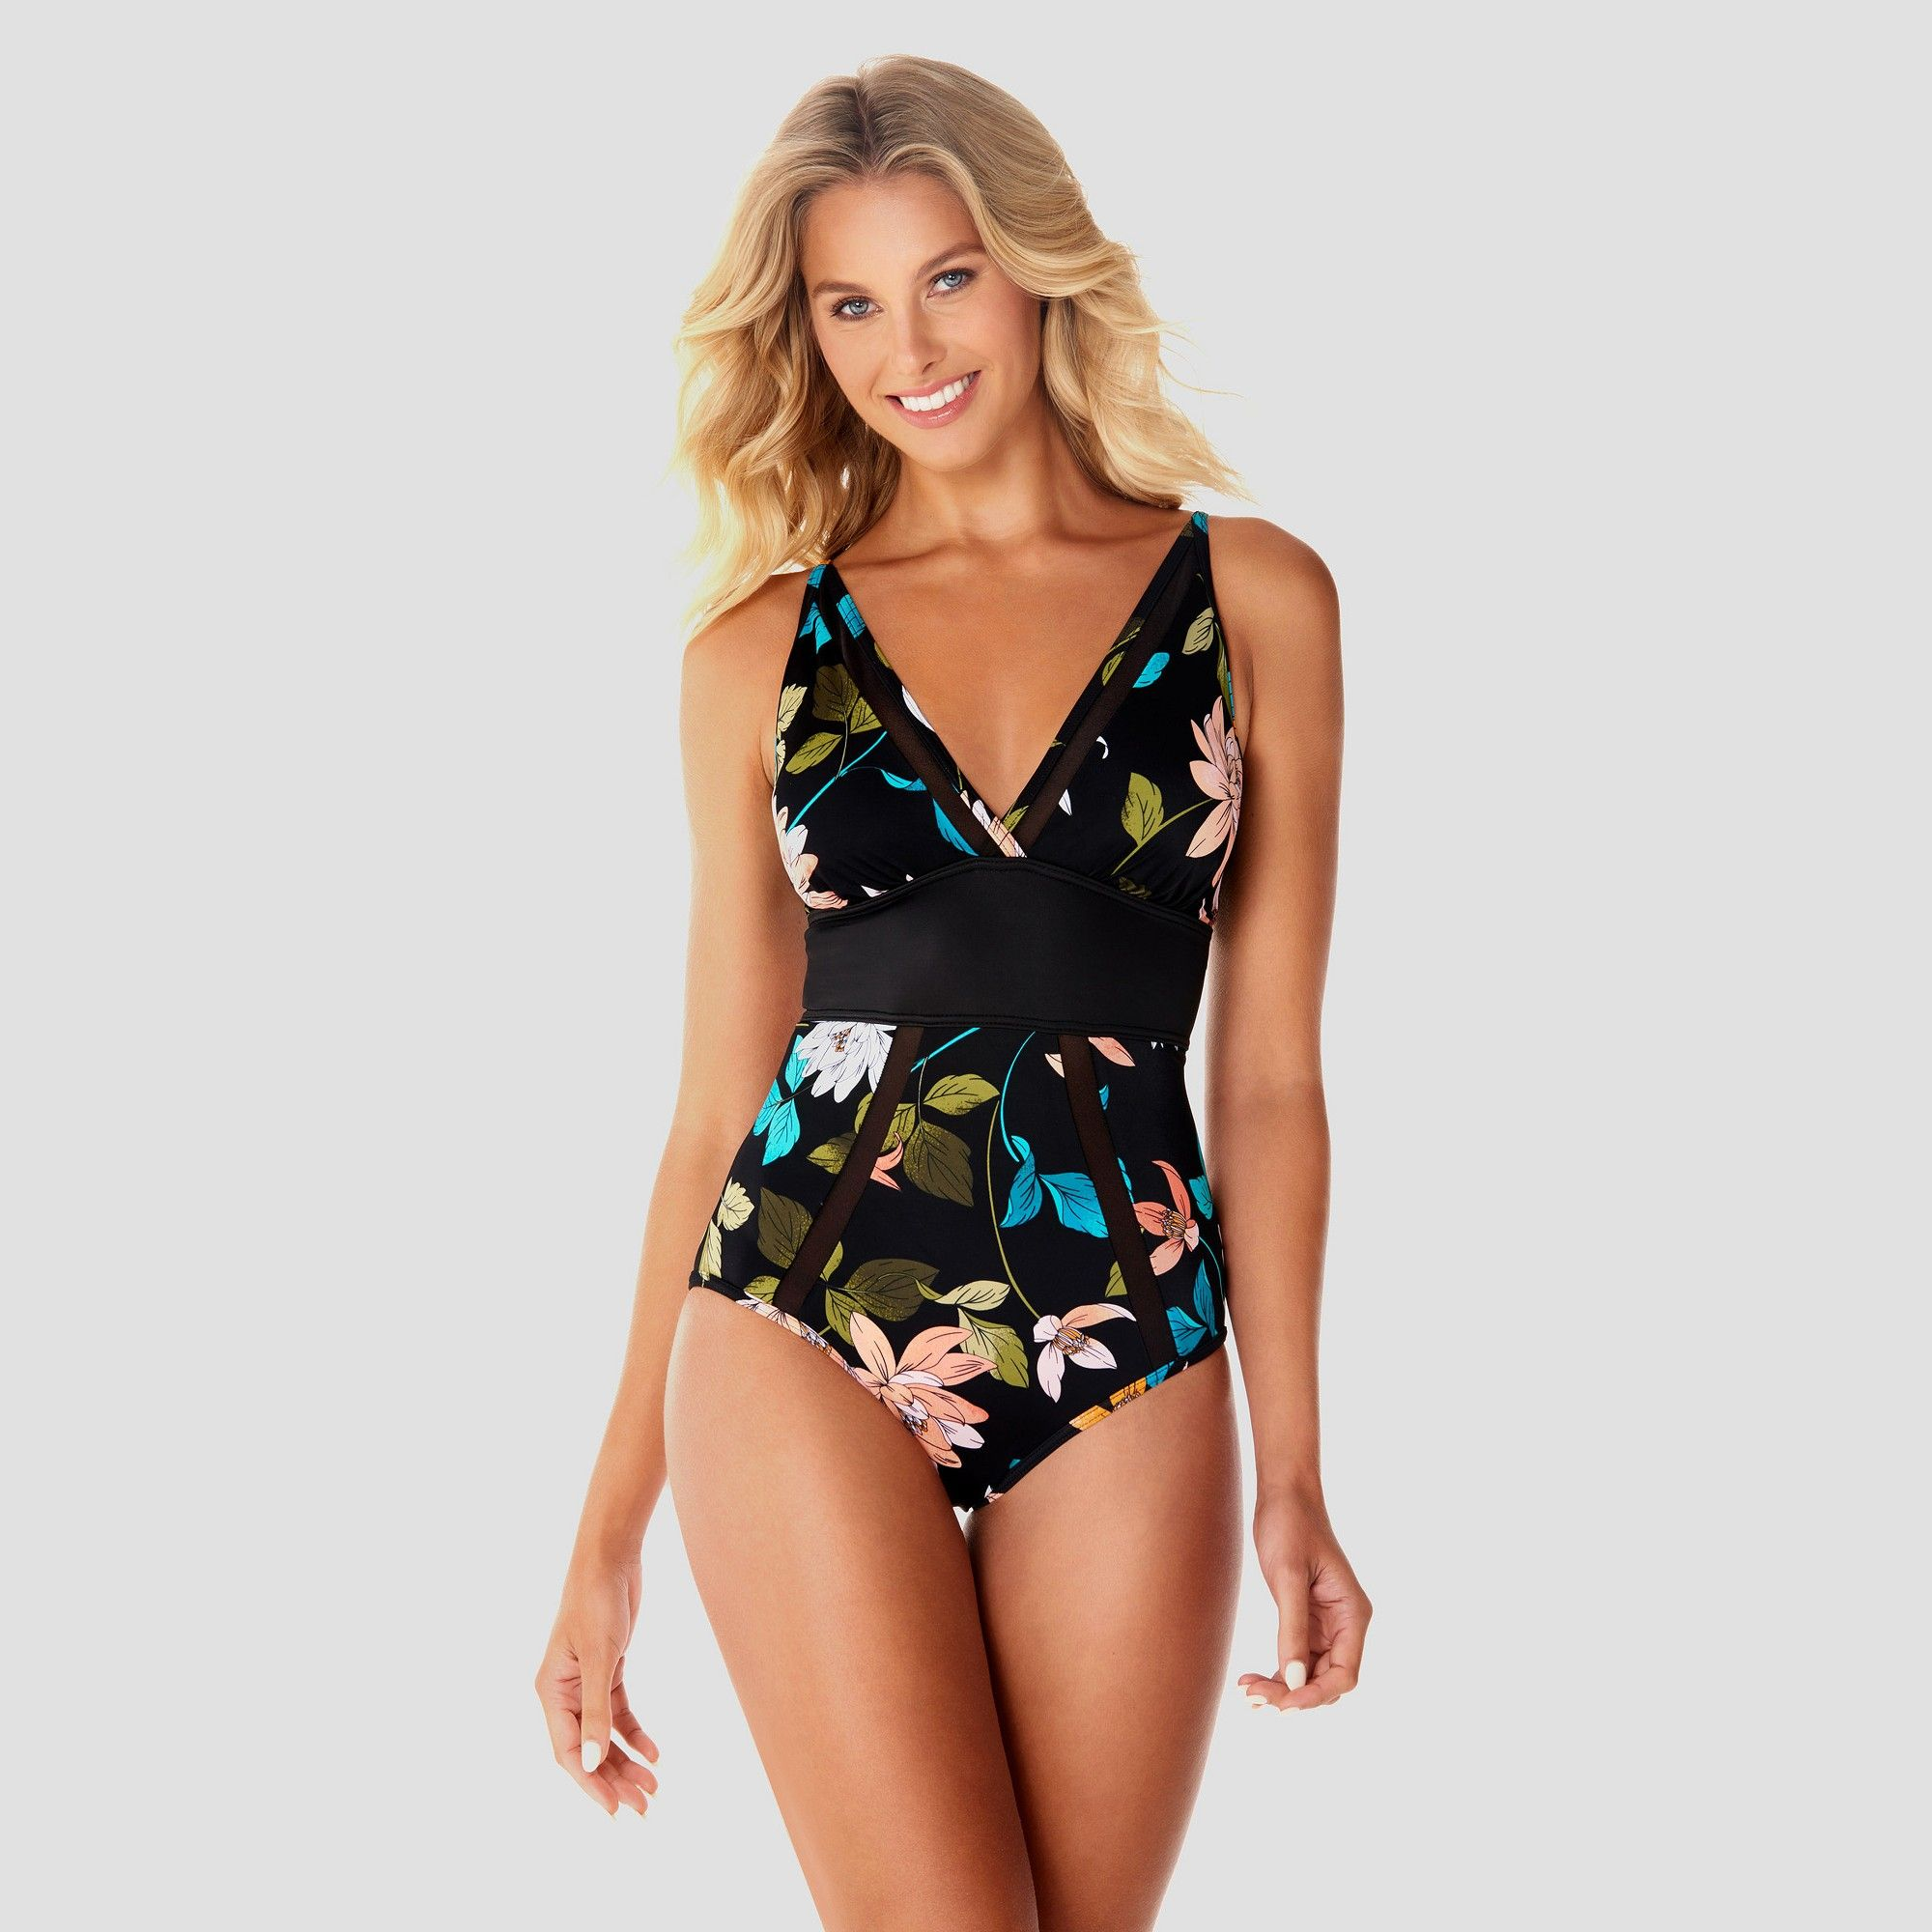 41c6b243aedaf Women's Slimming Control Mesh One Piece Swimsuit - Dreamsuit by Miracle  Brands Black Floral 12